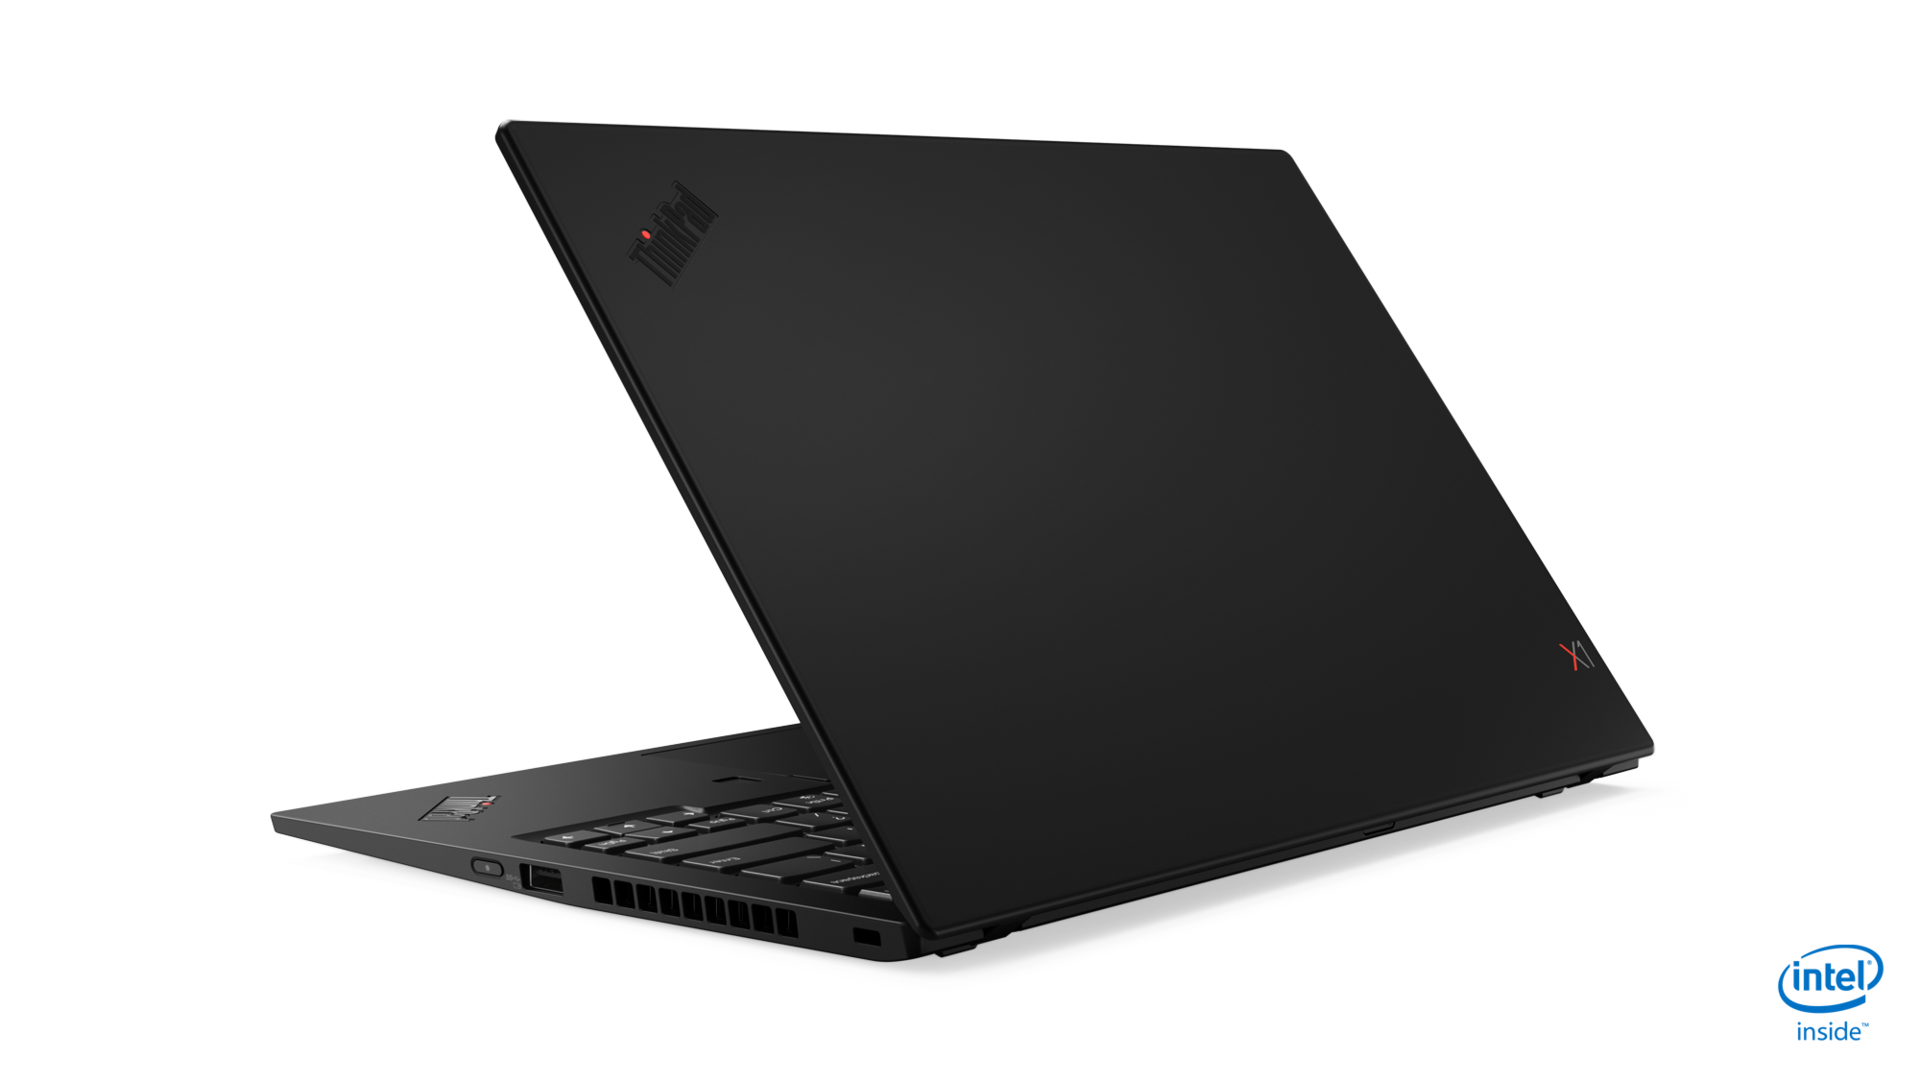 Lenovo ThinkPad X1 Carbon 2019 adds brighter LCDs, better